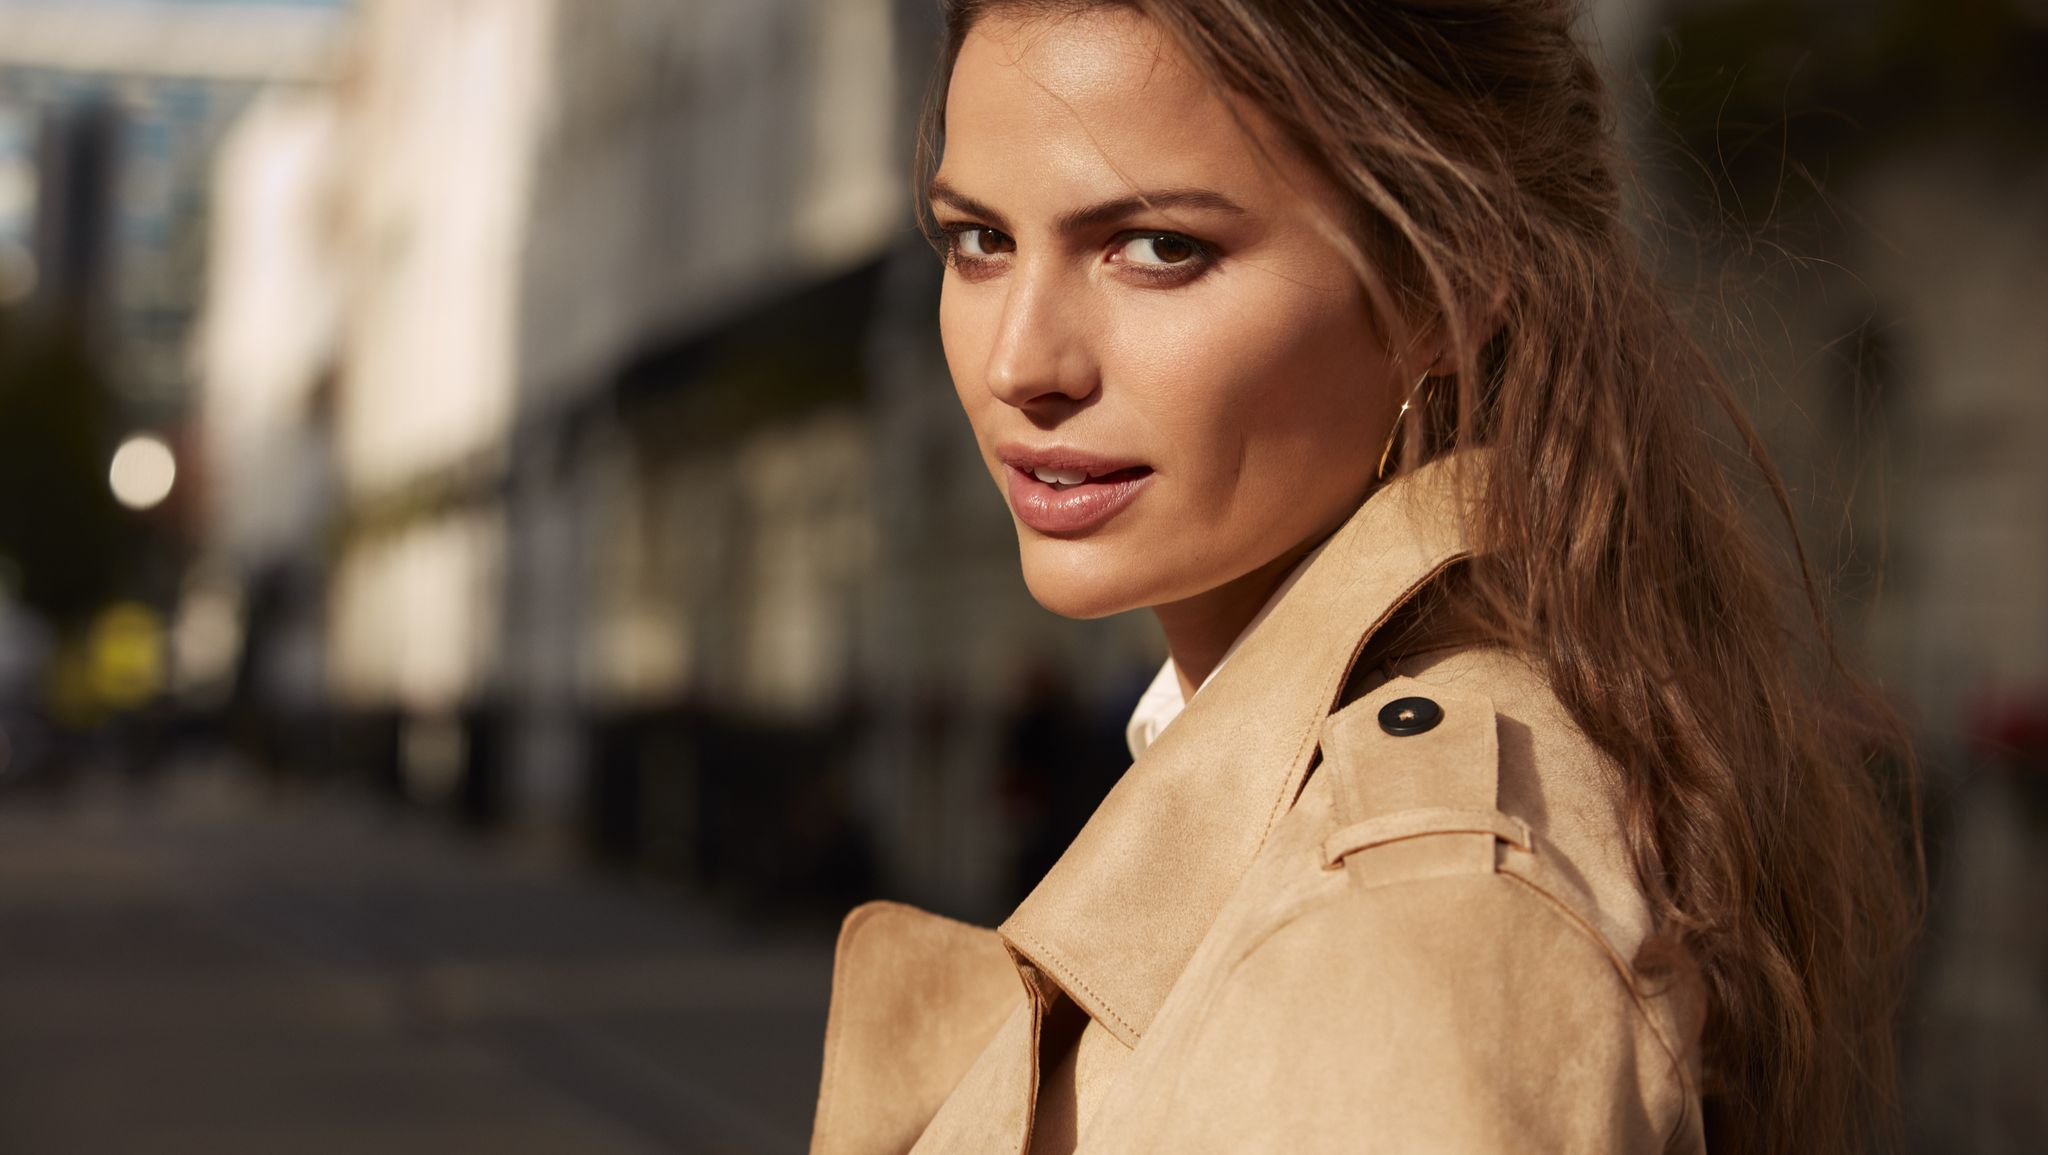 Cameron Russell on becoming a beauty ambassador for her voice, as much as her face